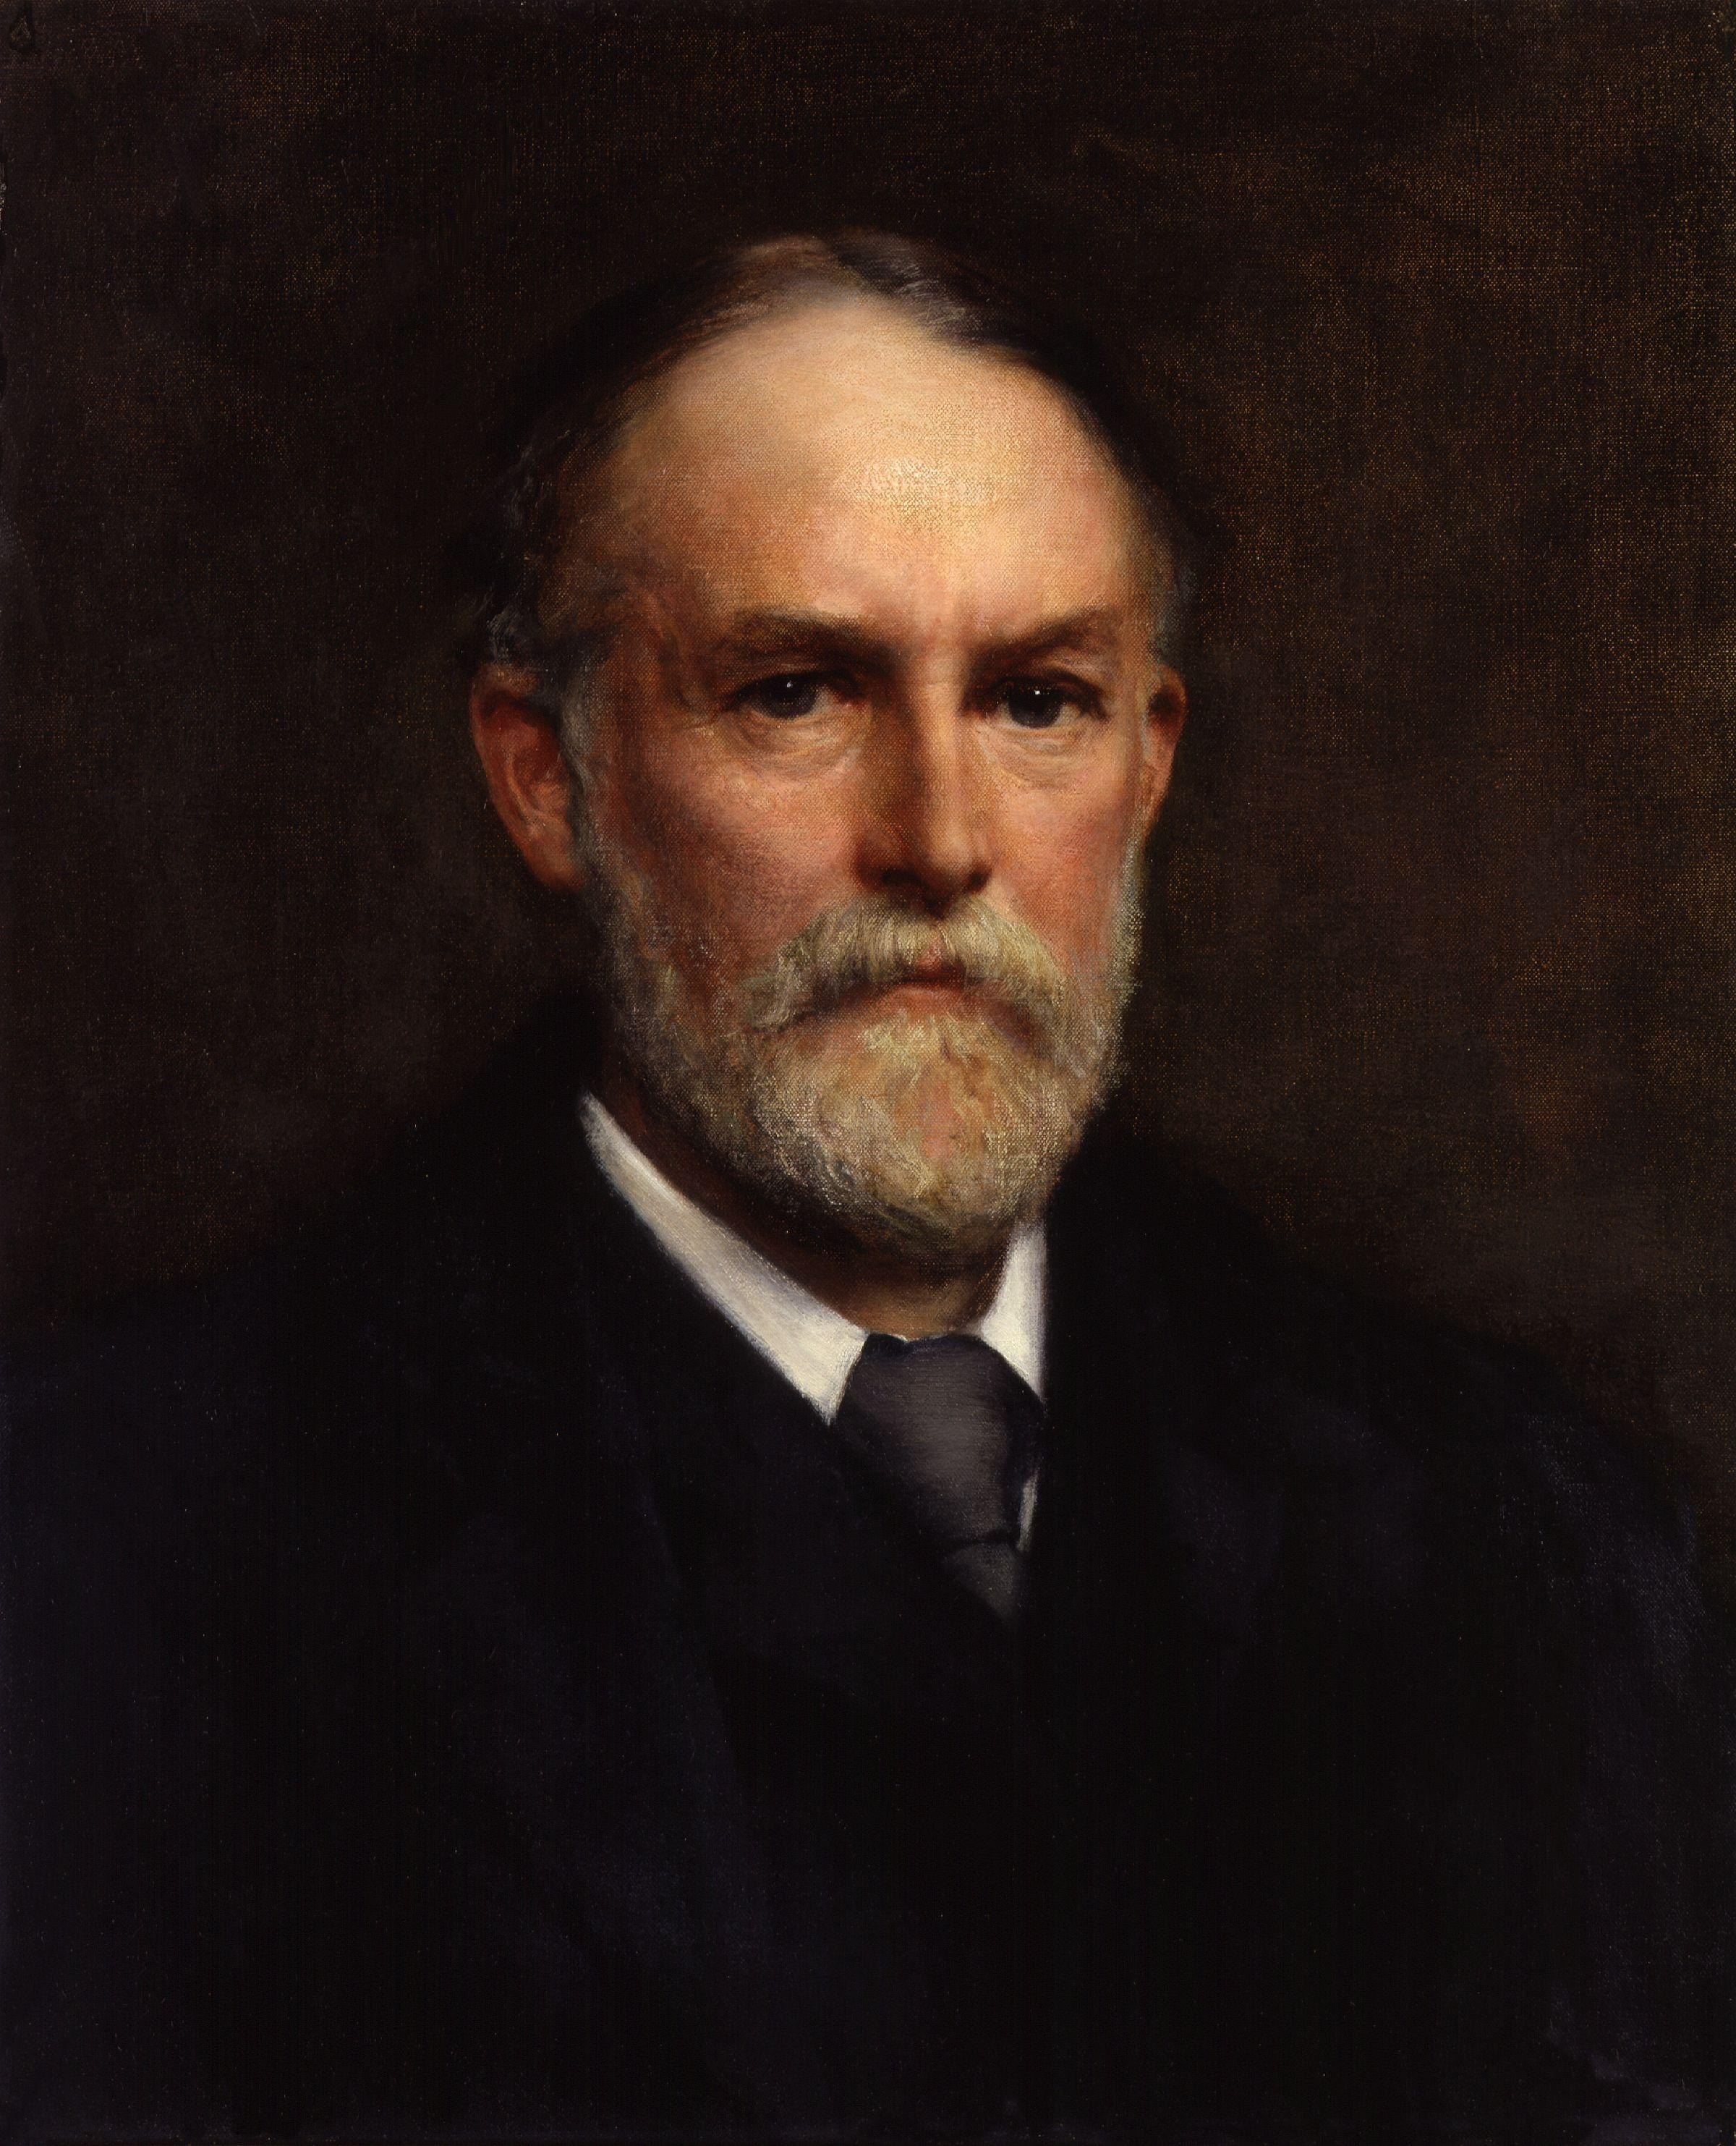 Frederic W. H. Myers - Wikipedia